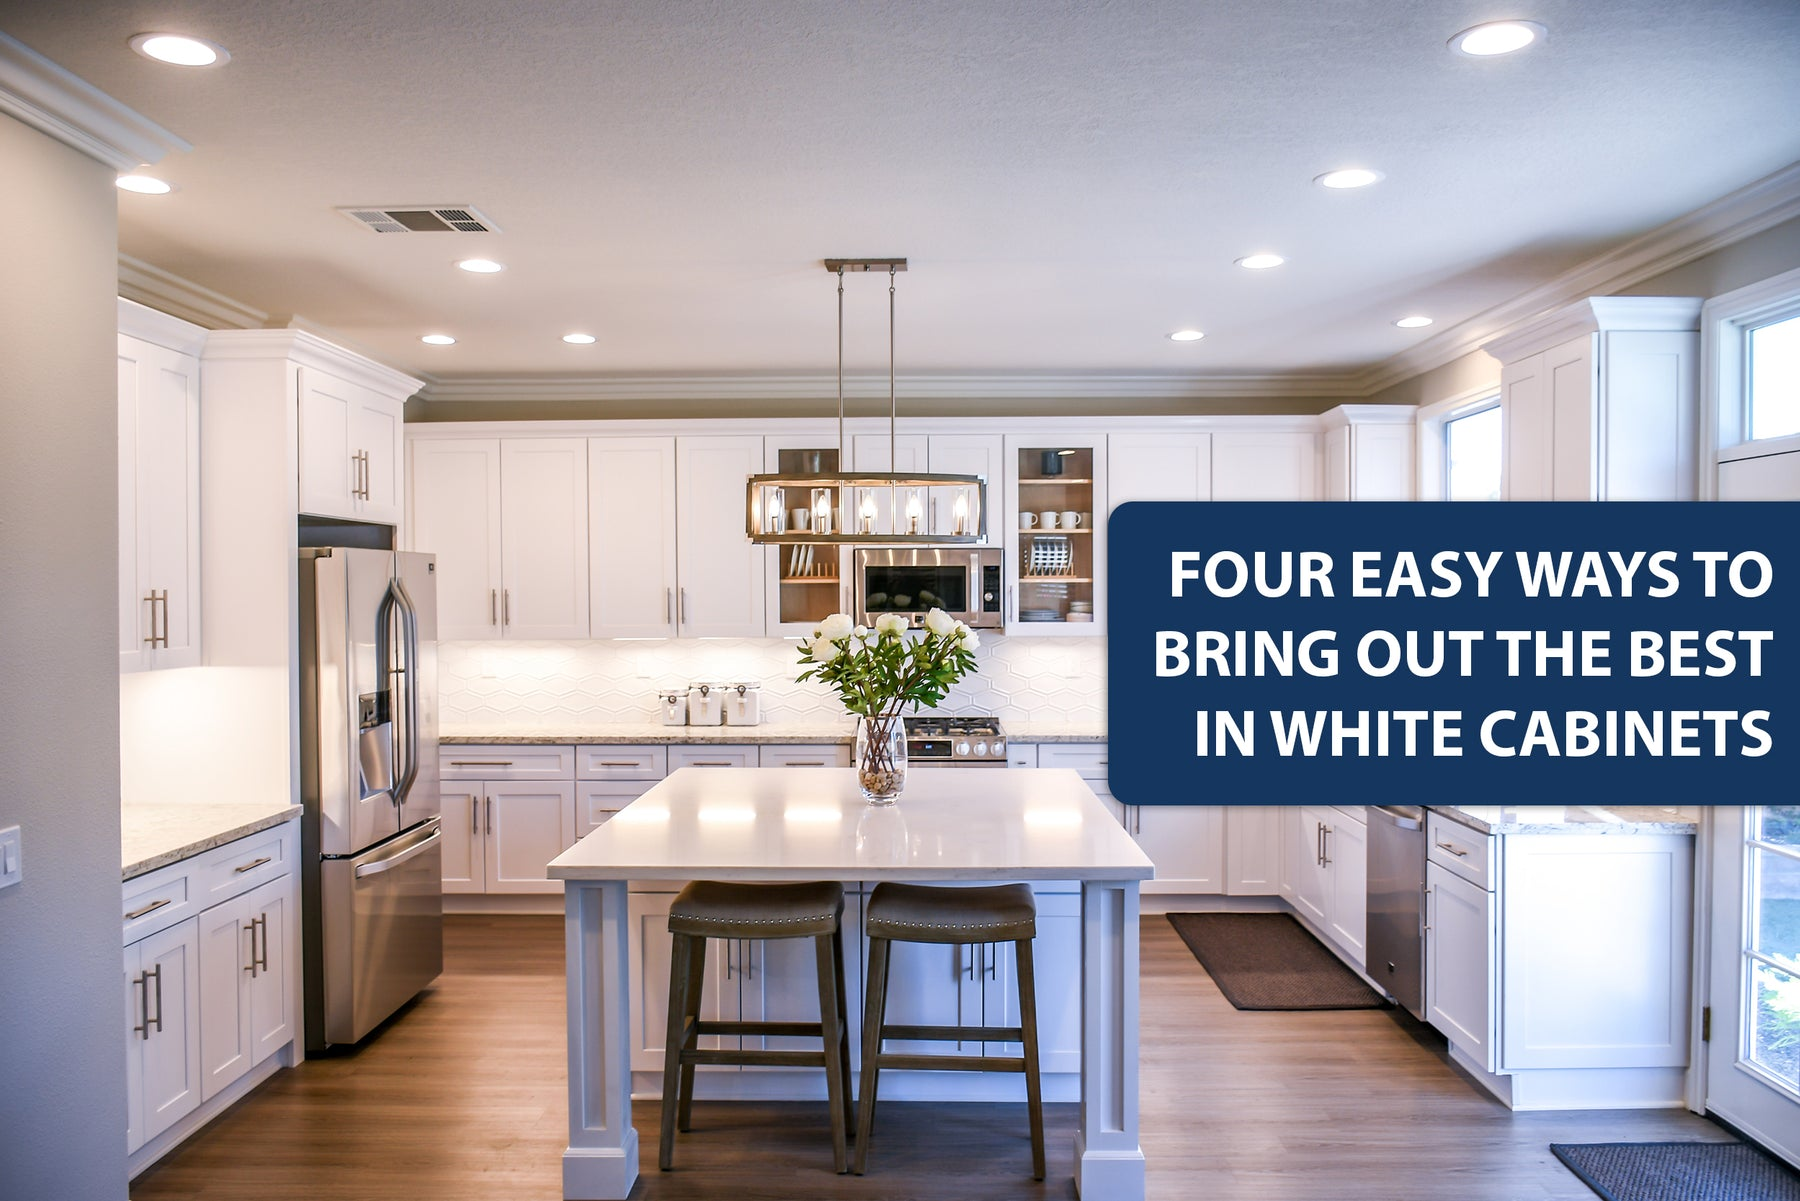 Four Easy Ways to Bring out the Best in White Cabinets